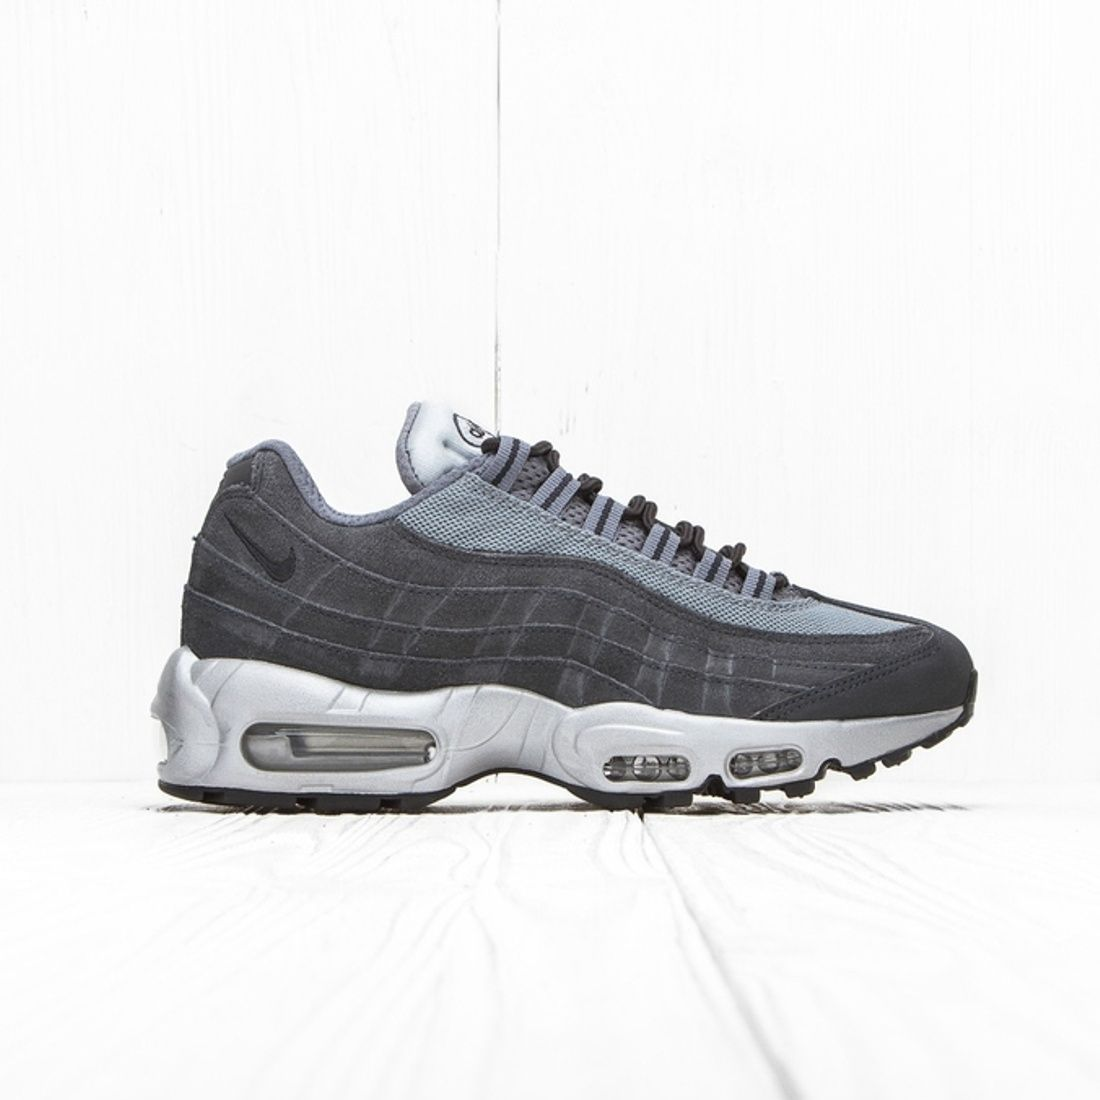 Nike Nike Air Max 95 Prm Wolf Grey/Cool Grey/Black/Anthracite 538416